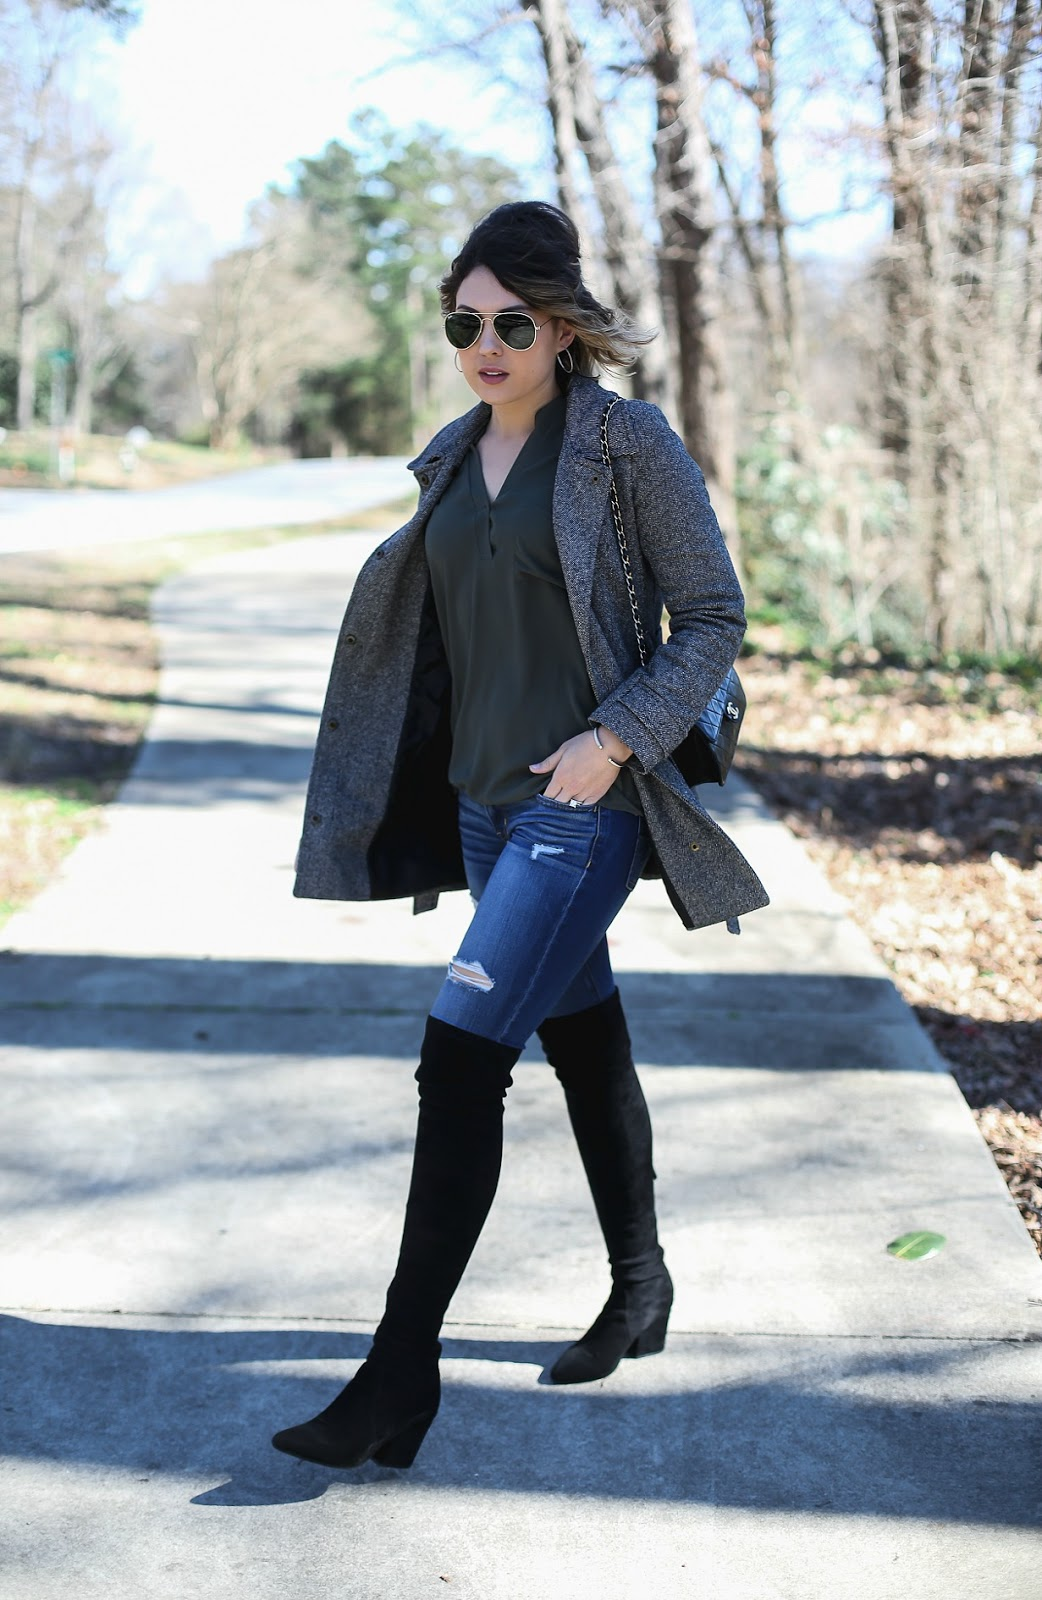 nordstrom lush tunic, over the knee boots, fashion hippie loves